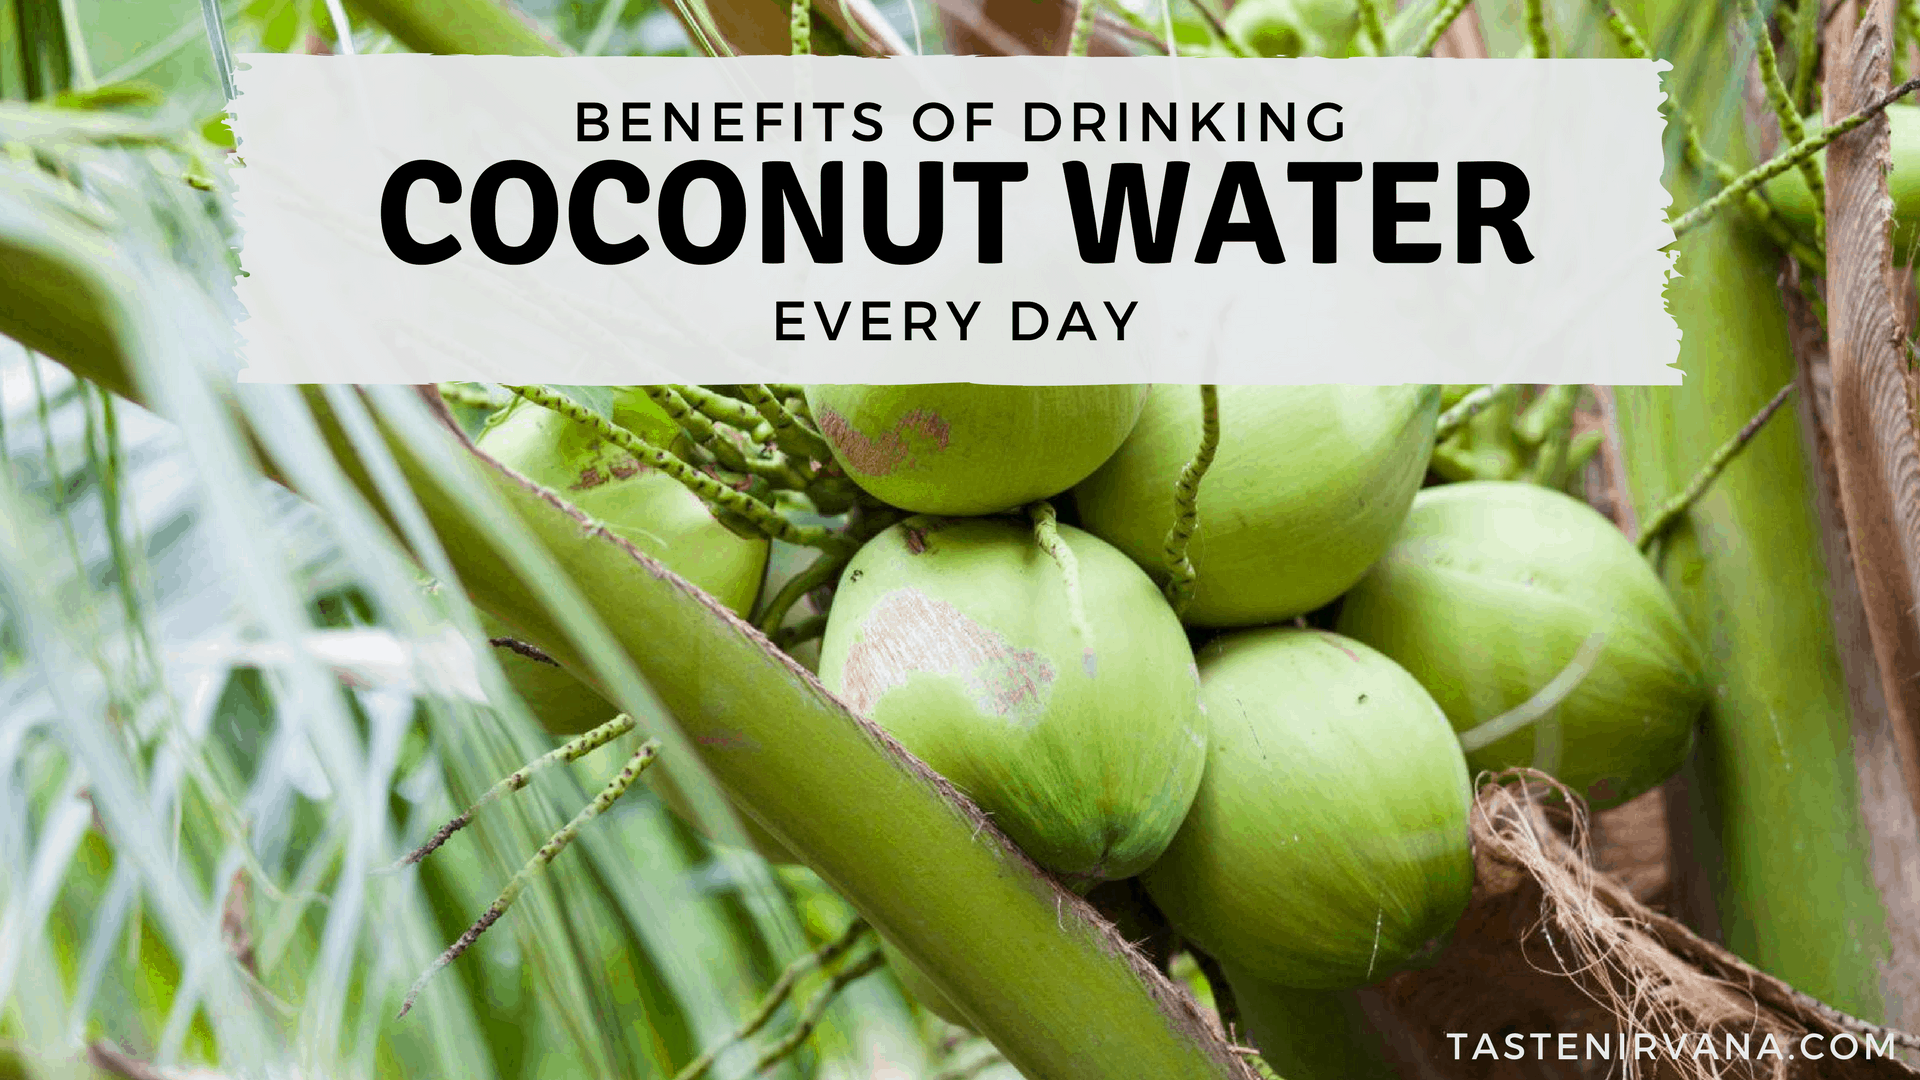 benefits of drinking coconut water daily - taste nirvana